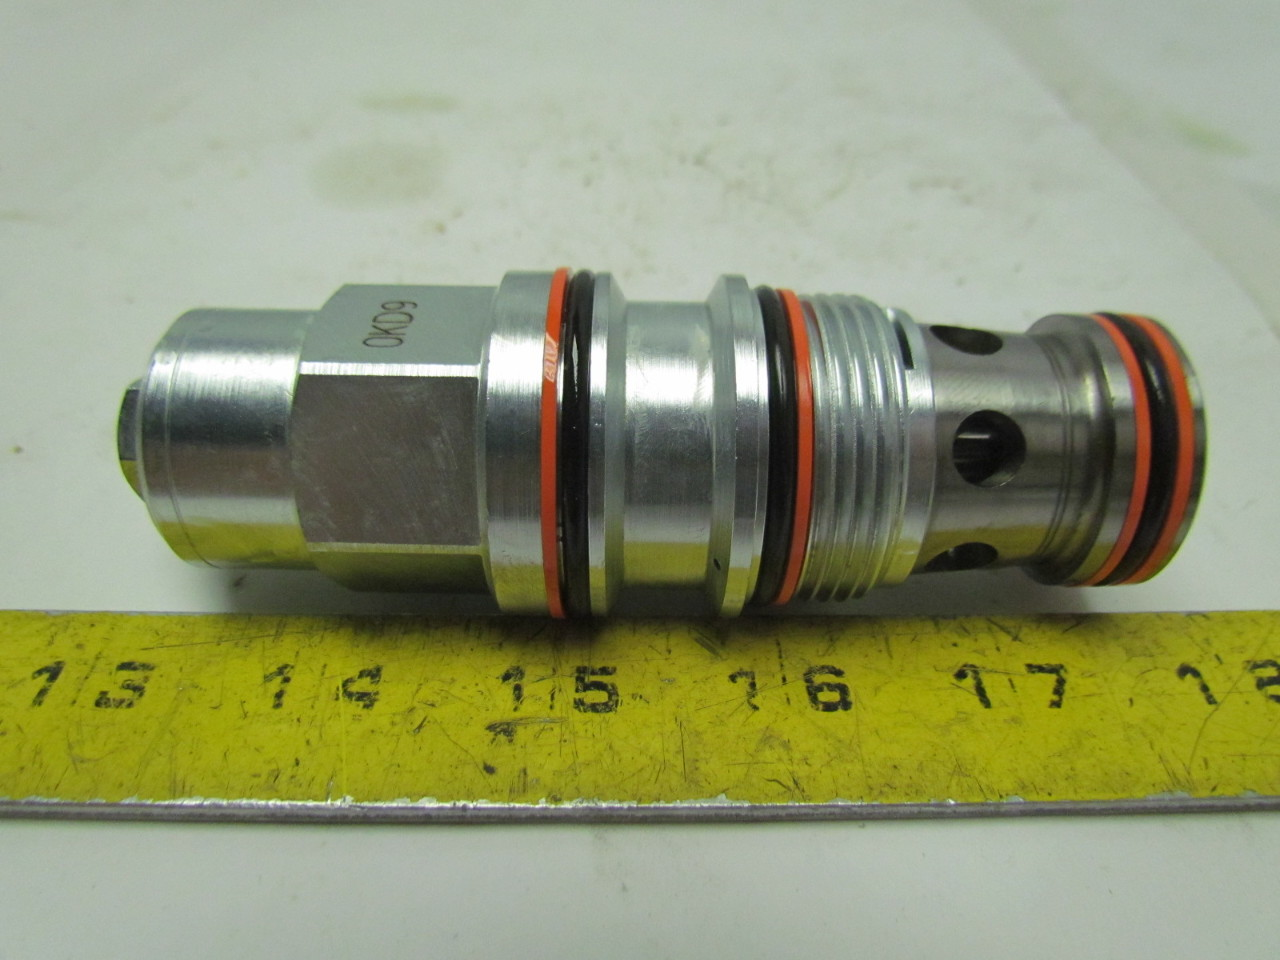 sun hydraulics 1 -allen- bradley 4100-cca15f rev f interface cable assembly flying leads $ 12900.